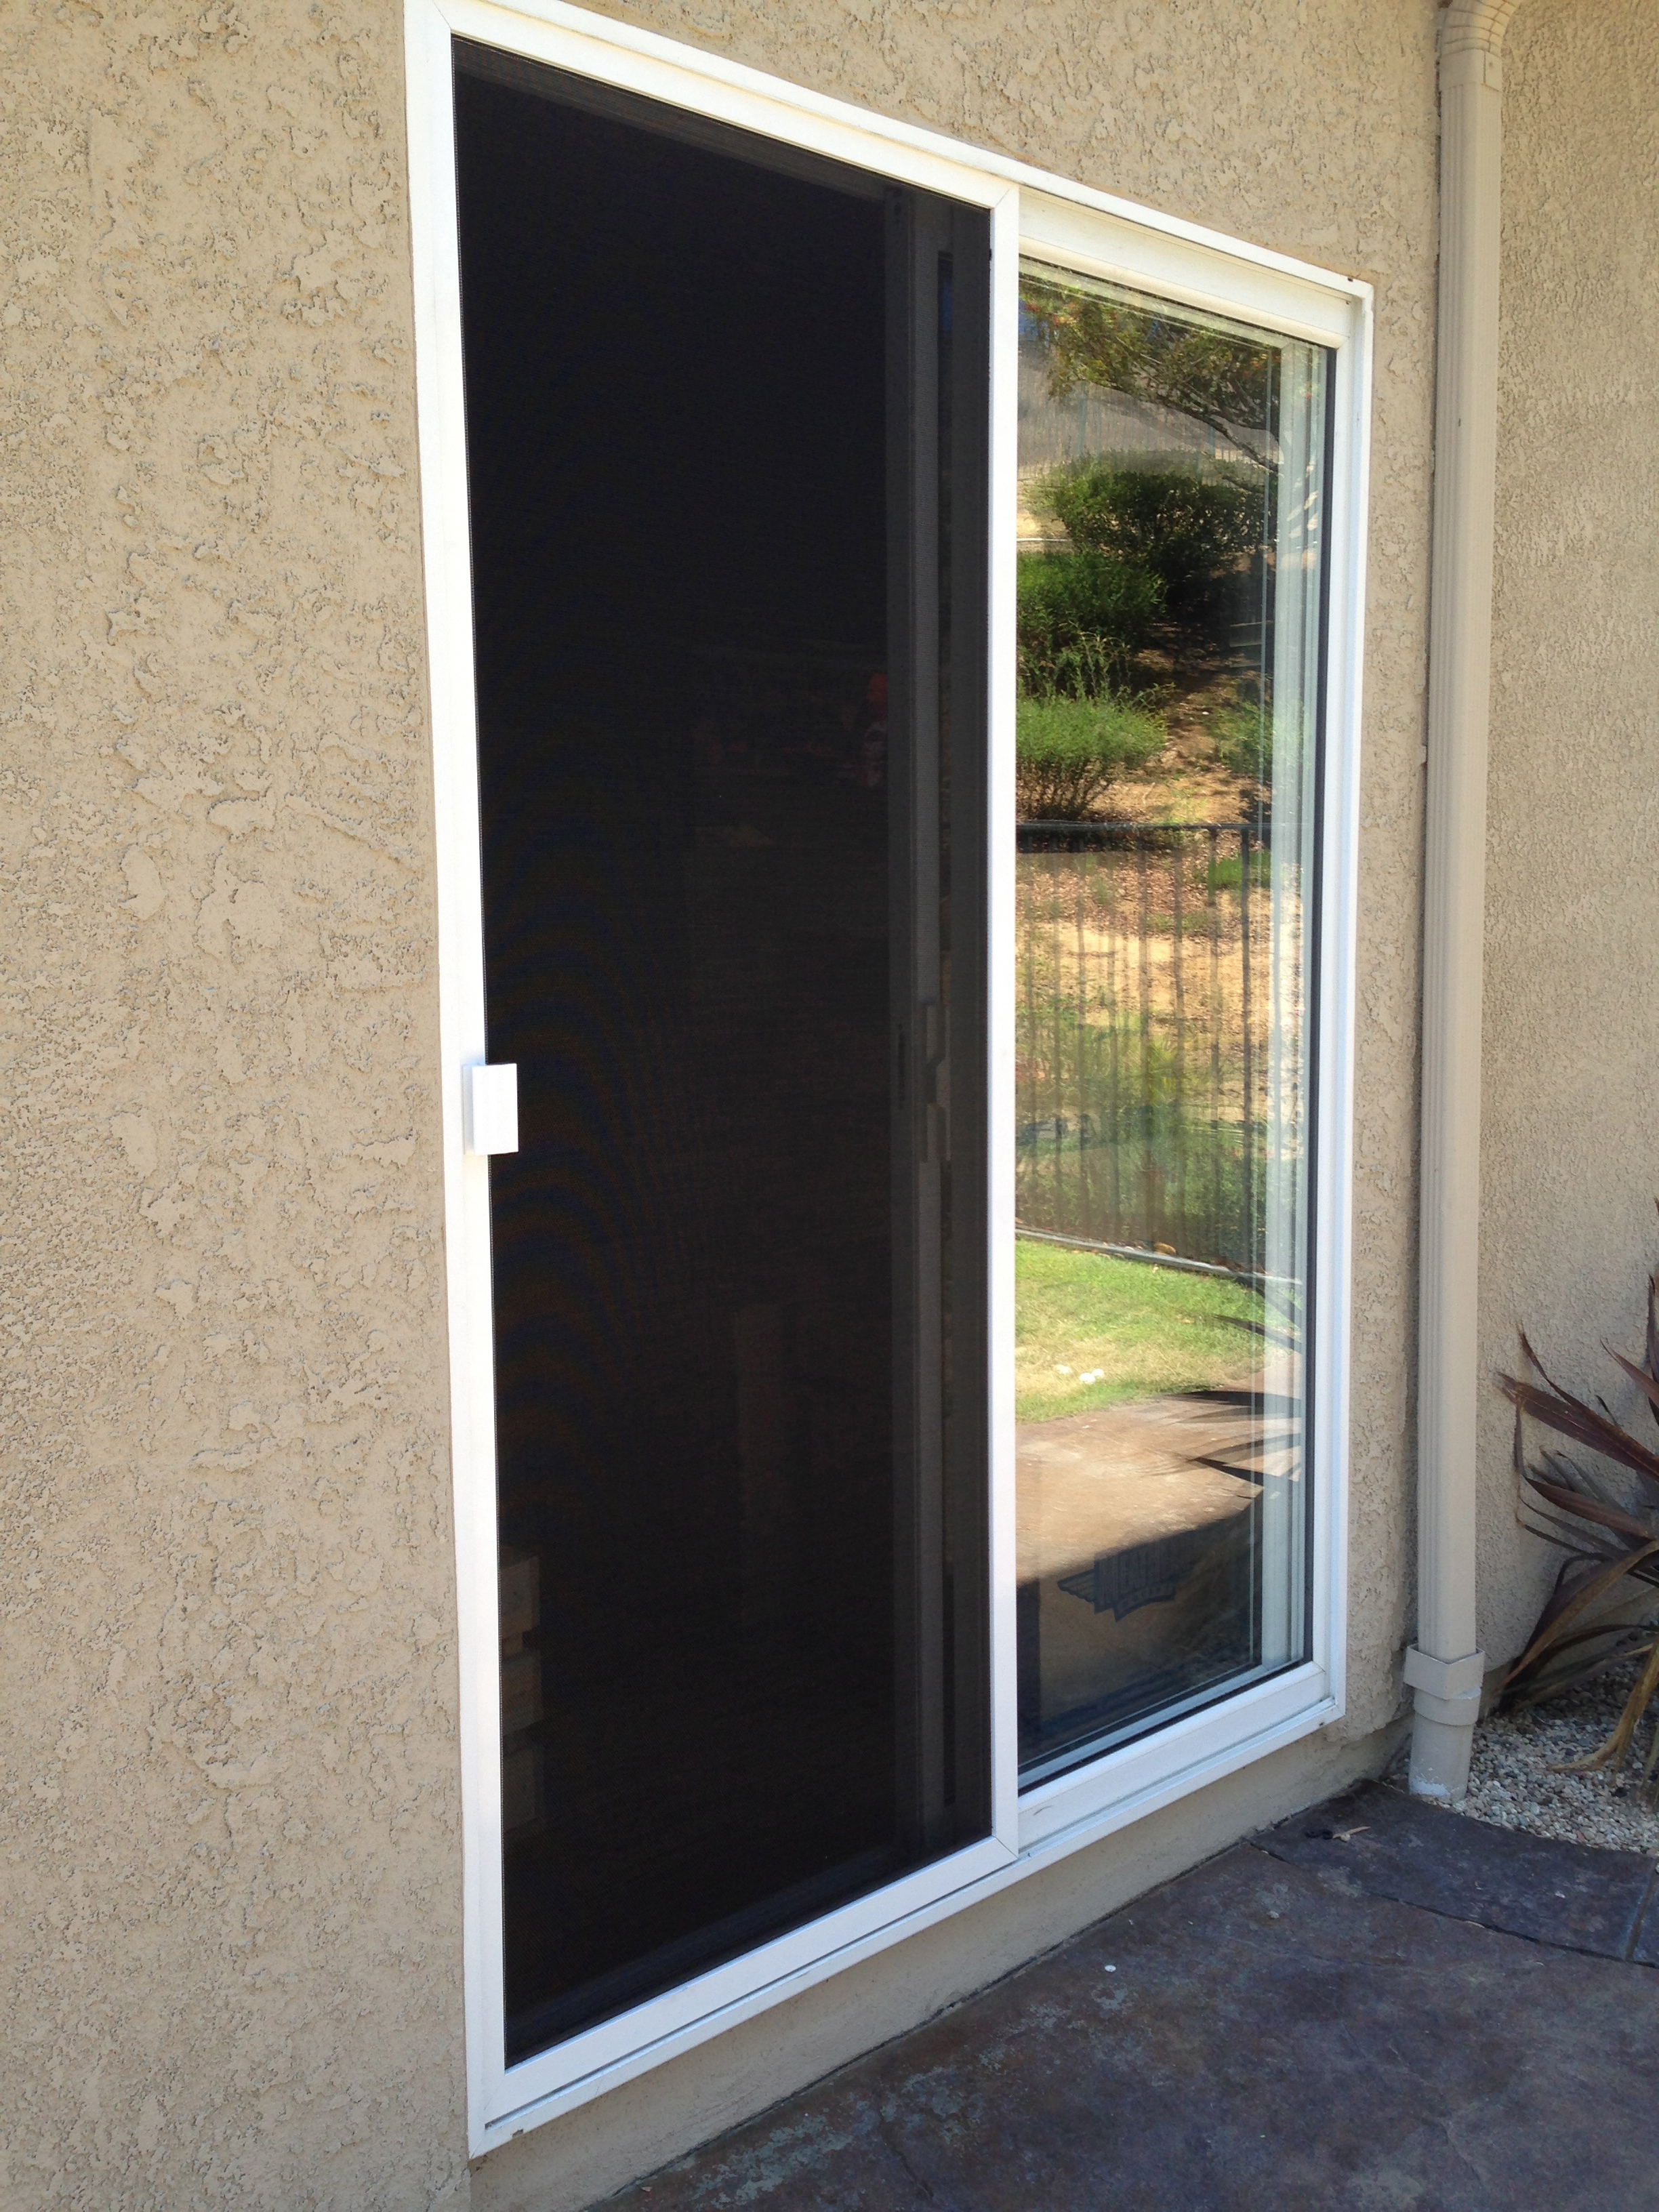 why does a door screen simi valley need to be repaired or